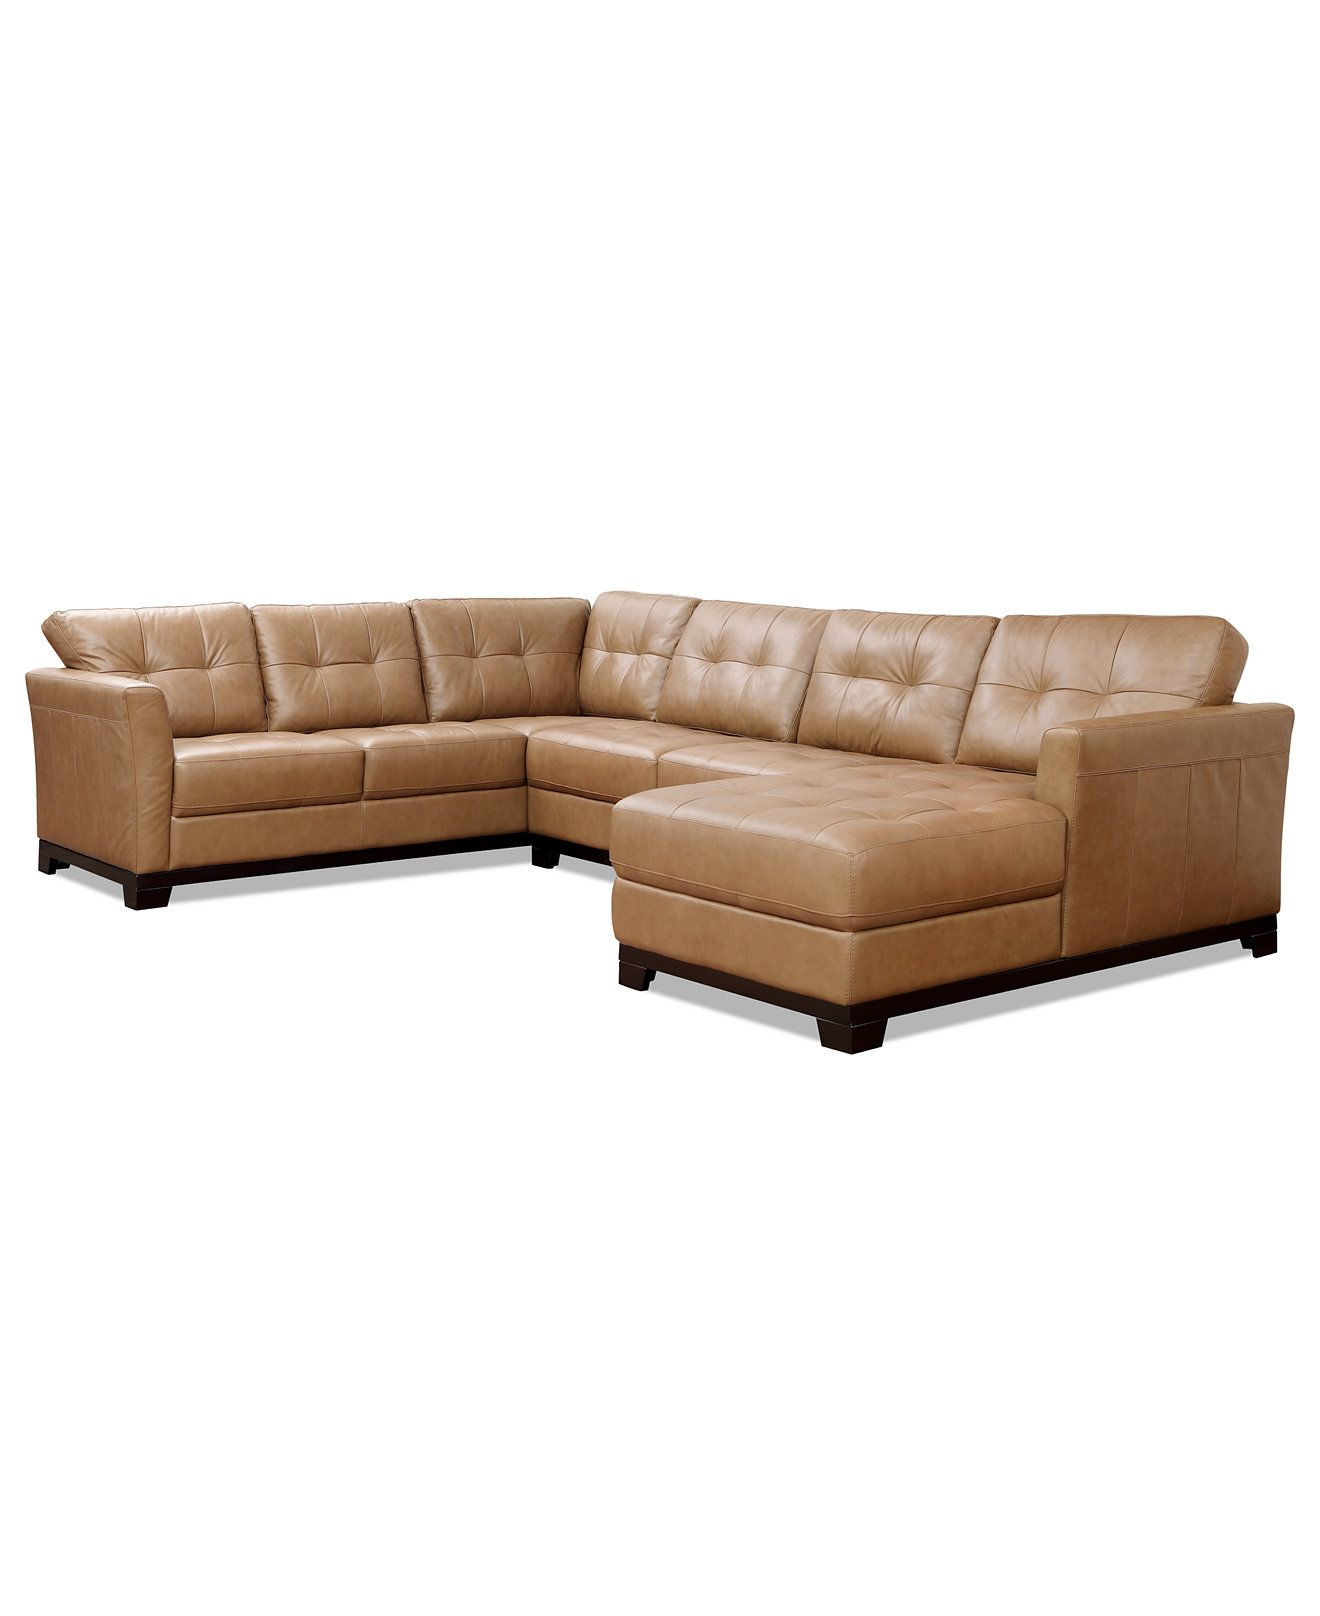 3 Piece Leather Sectional Sofa With Chaise – Hereo Sofa